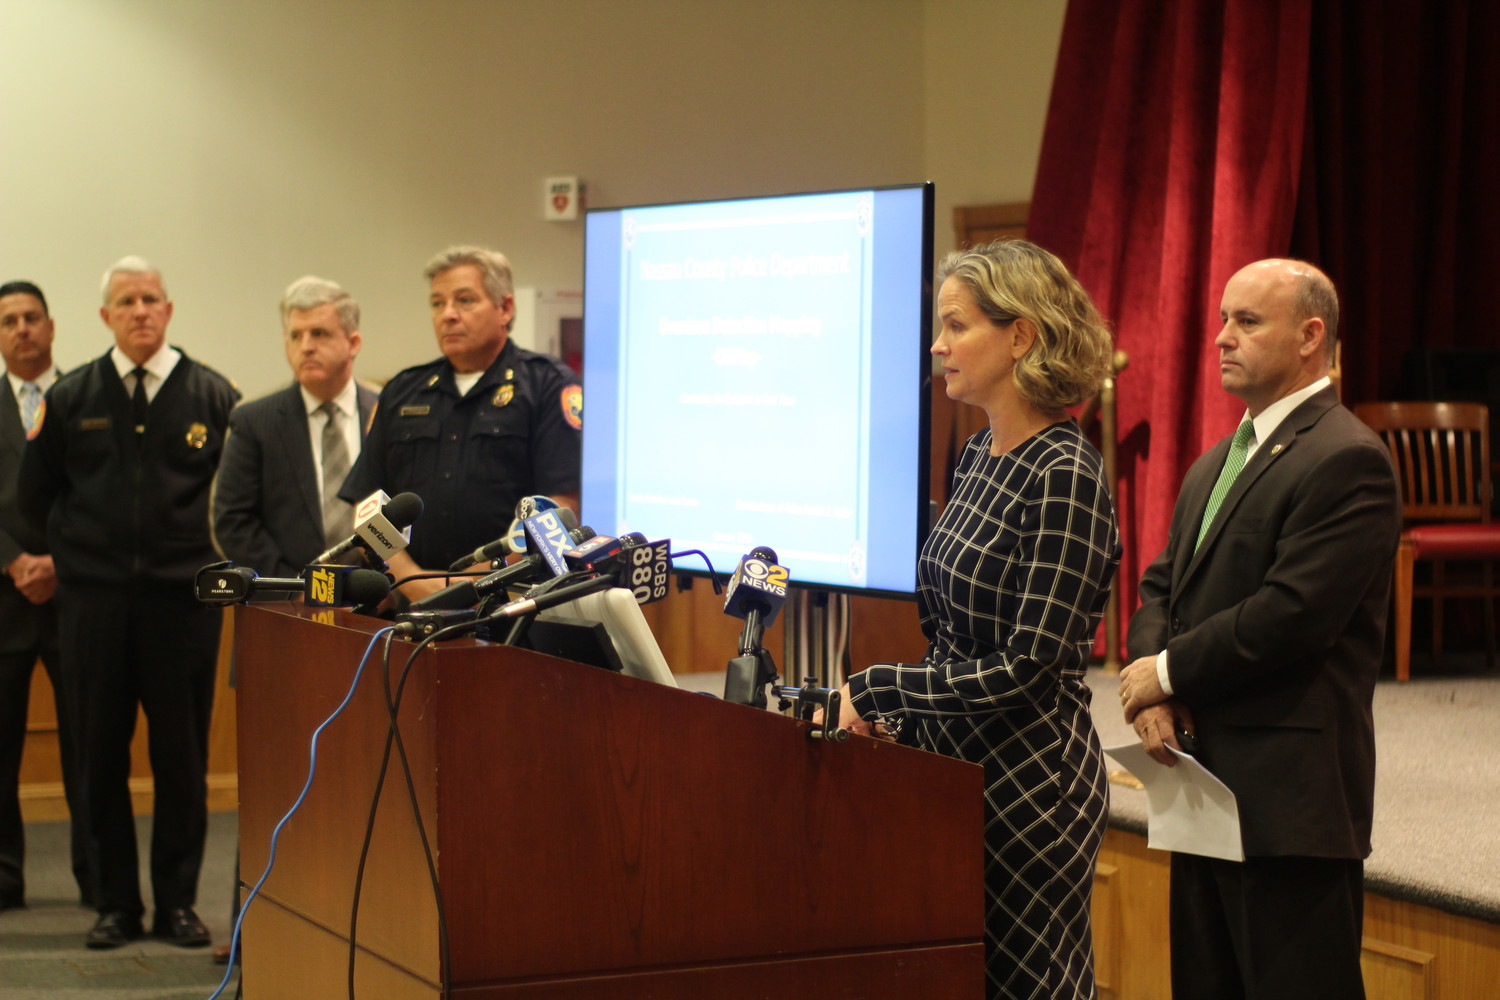 Nassau County Executive Laura Curran spoke about how real-time data that will help the police department tackle the county's overdose problem, while Nassau County Police chiefs and other local elected leaders stood in attendance.